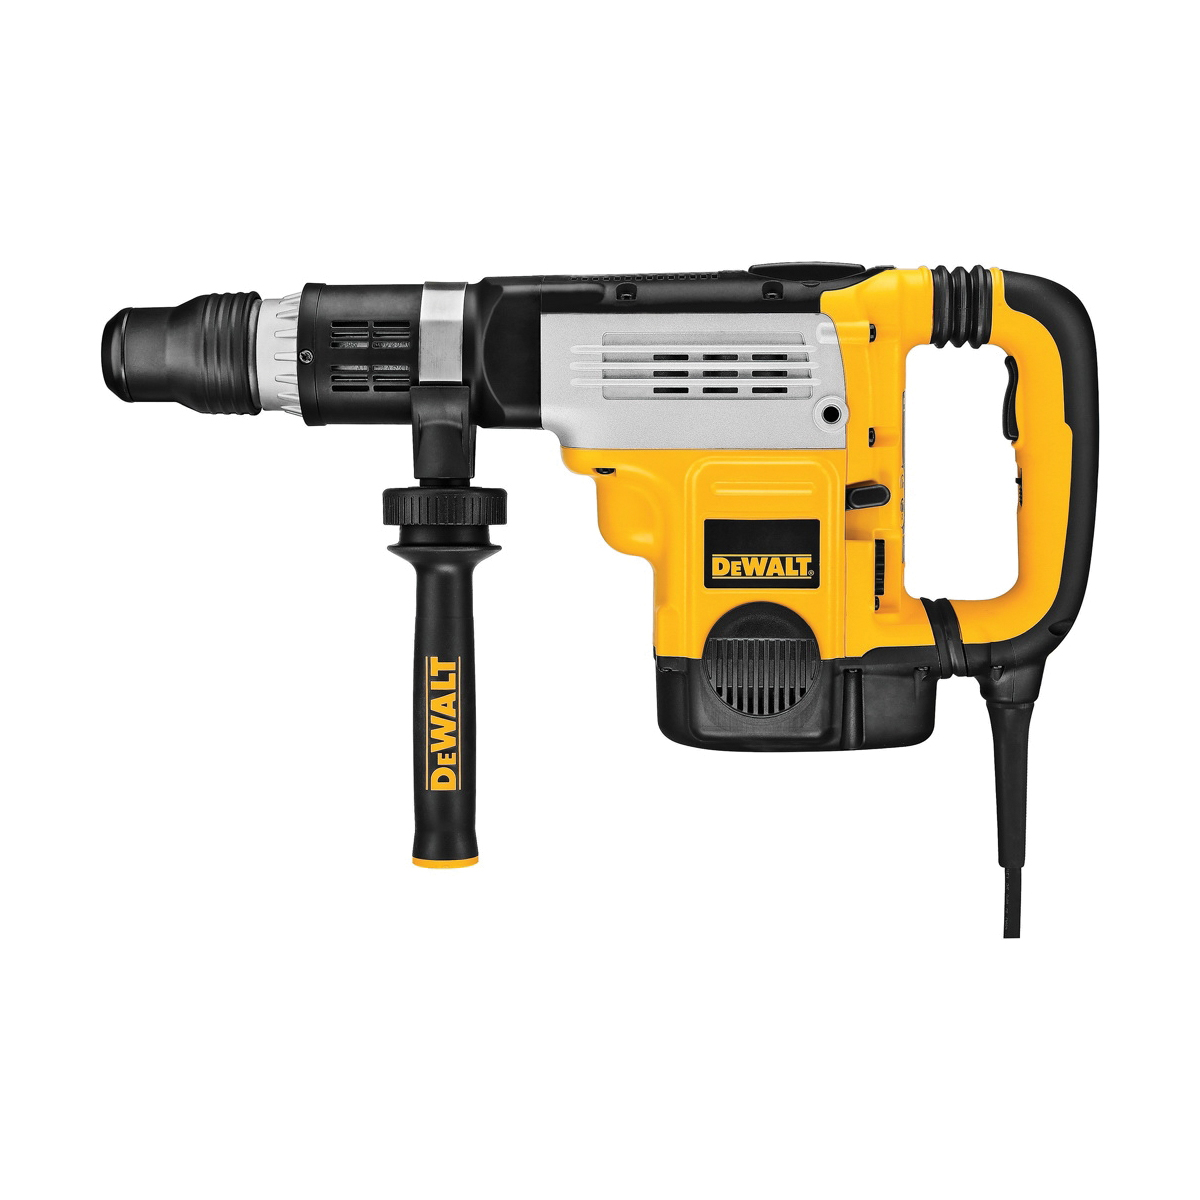 DeWALT® D25763K Combination Rotary Hammer Kit, 2 in SDS Max® Chuck, 1150 to 2304 bpm, 125 to 250 rpm No-Load, 6 in Max Core Bit Compatibility, 2 in Max Solid Bit Capacity, 23 in OAL